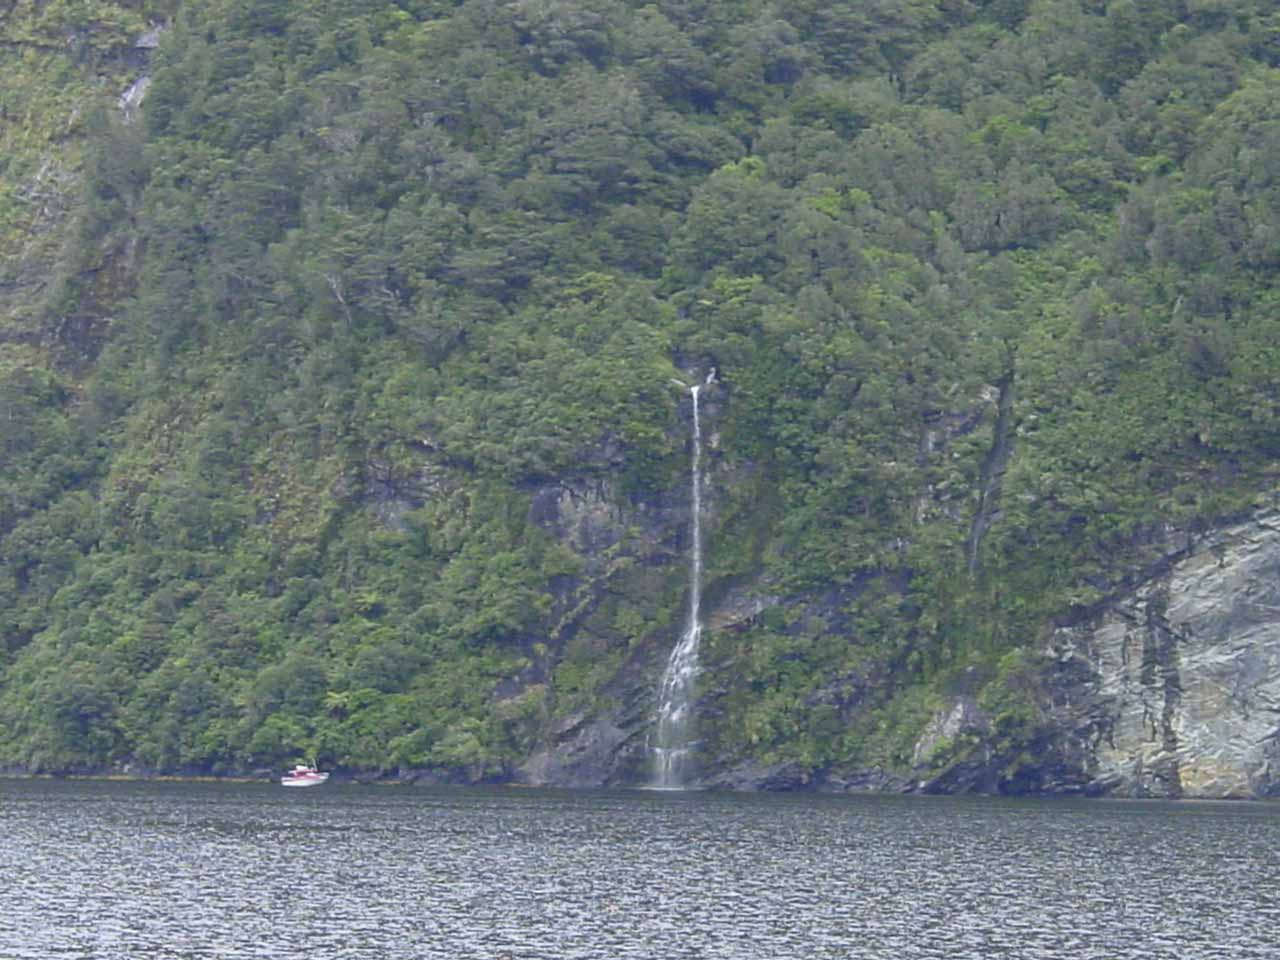 A small craft dwarfed by a thin waterfall in one of the side arms of Doubtful Sound